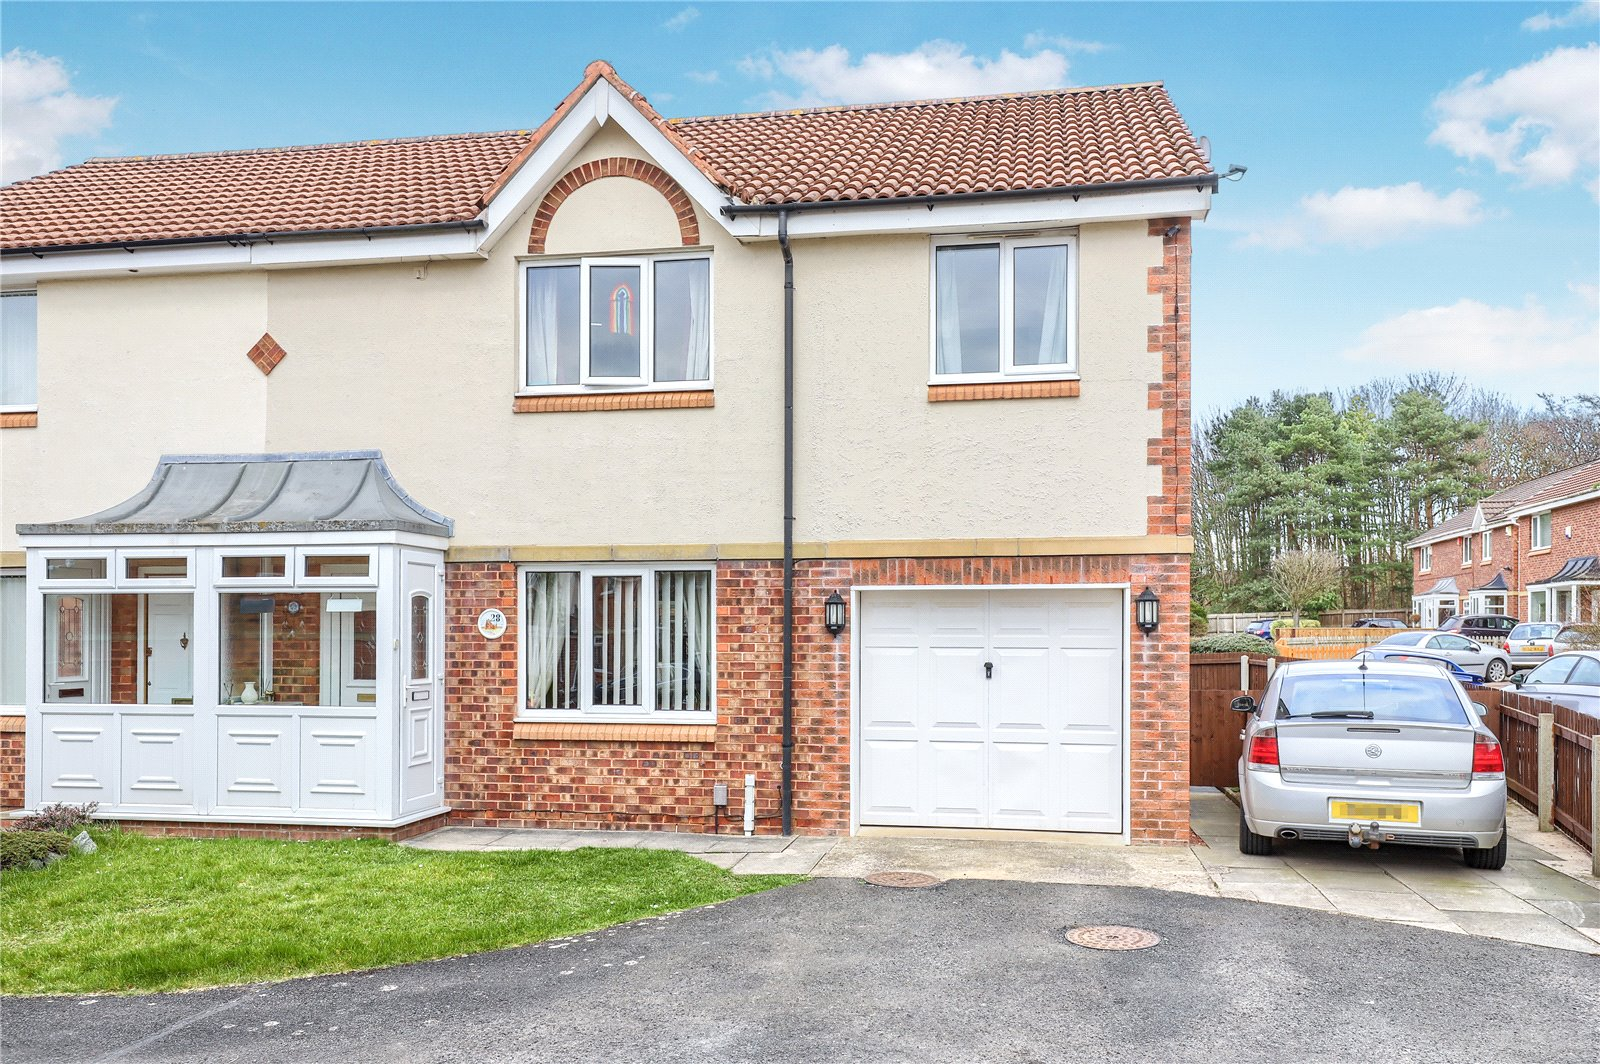 3 bed house for sale in Lynmouth Close, Hemlington - Property Image 1